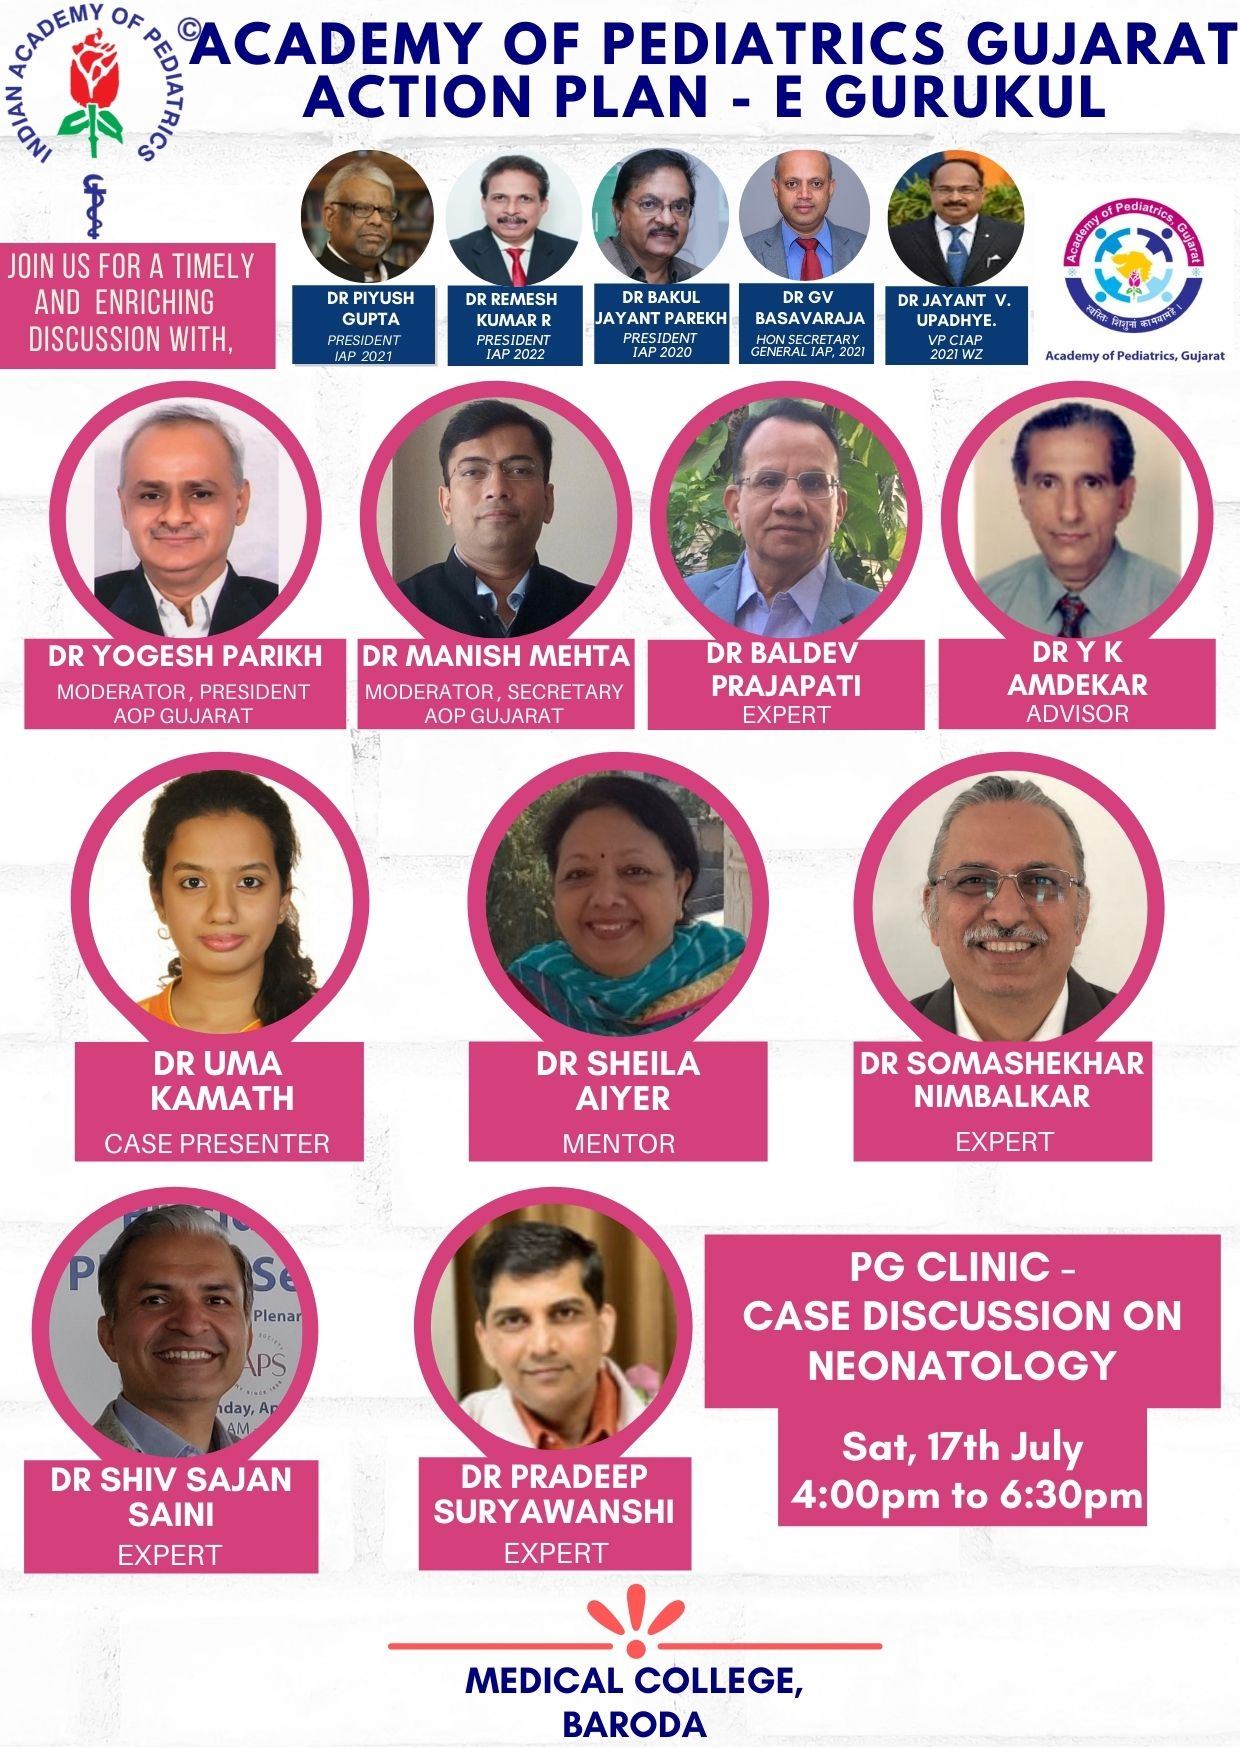 17th-July-AOP-Gujarat-Action-Plan-PG-Clinic-case-discussion-on-Neonatology